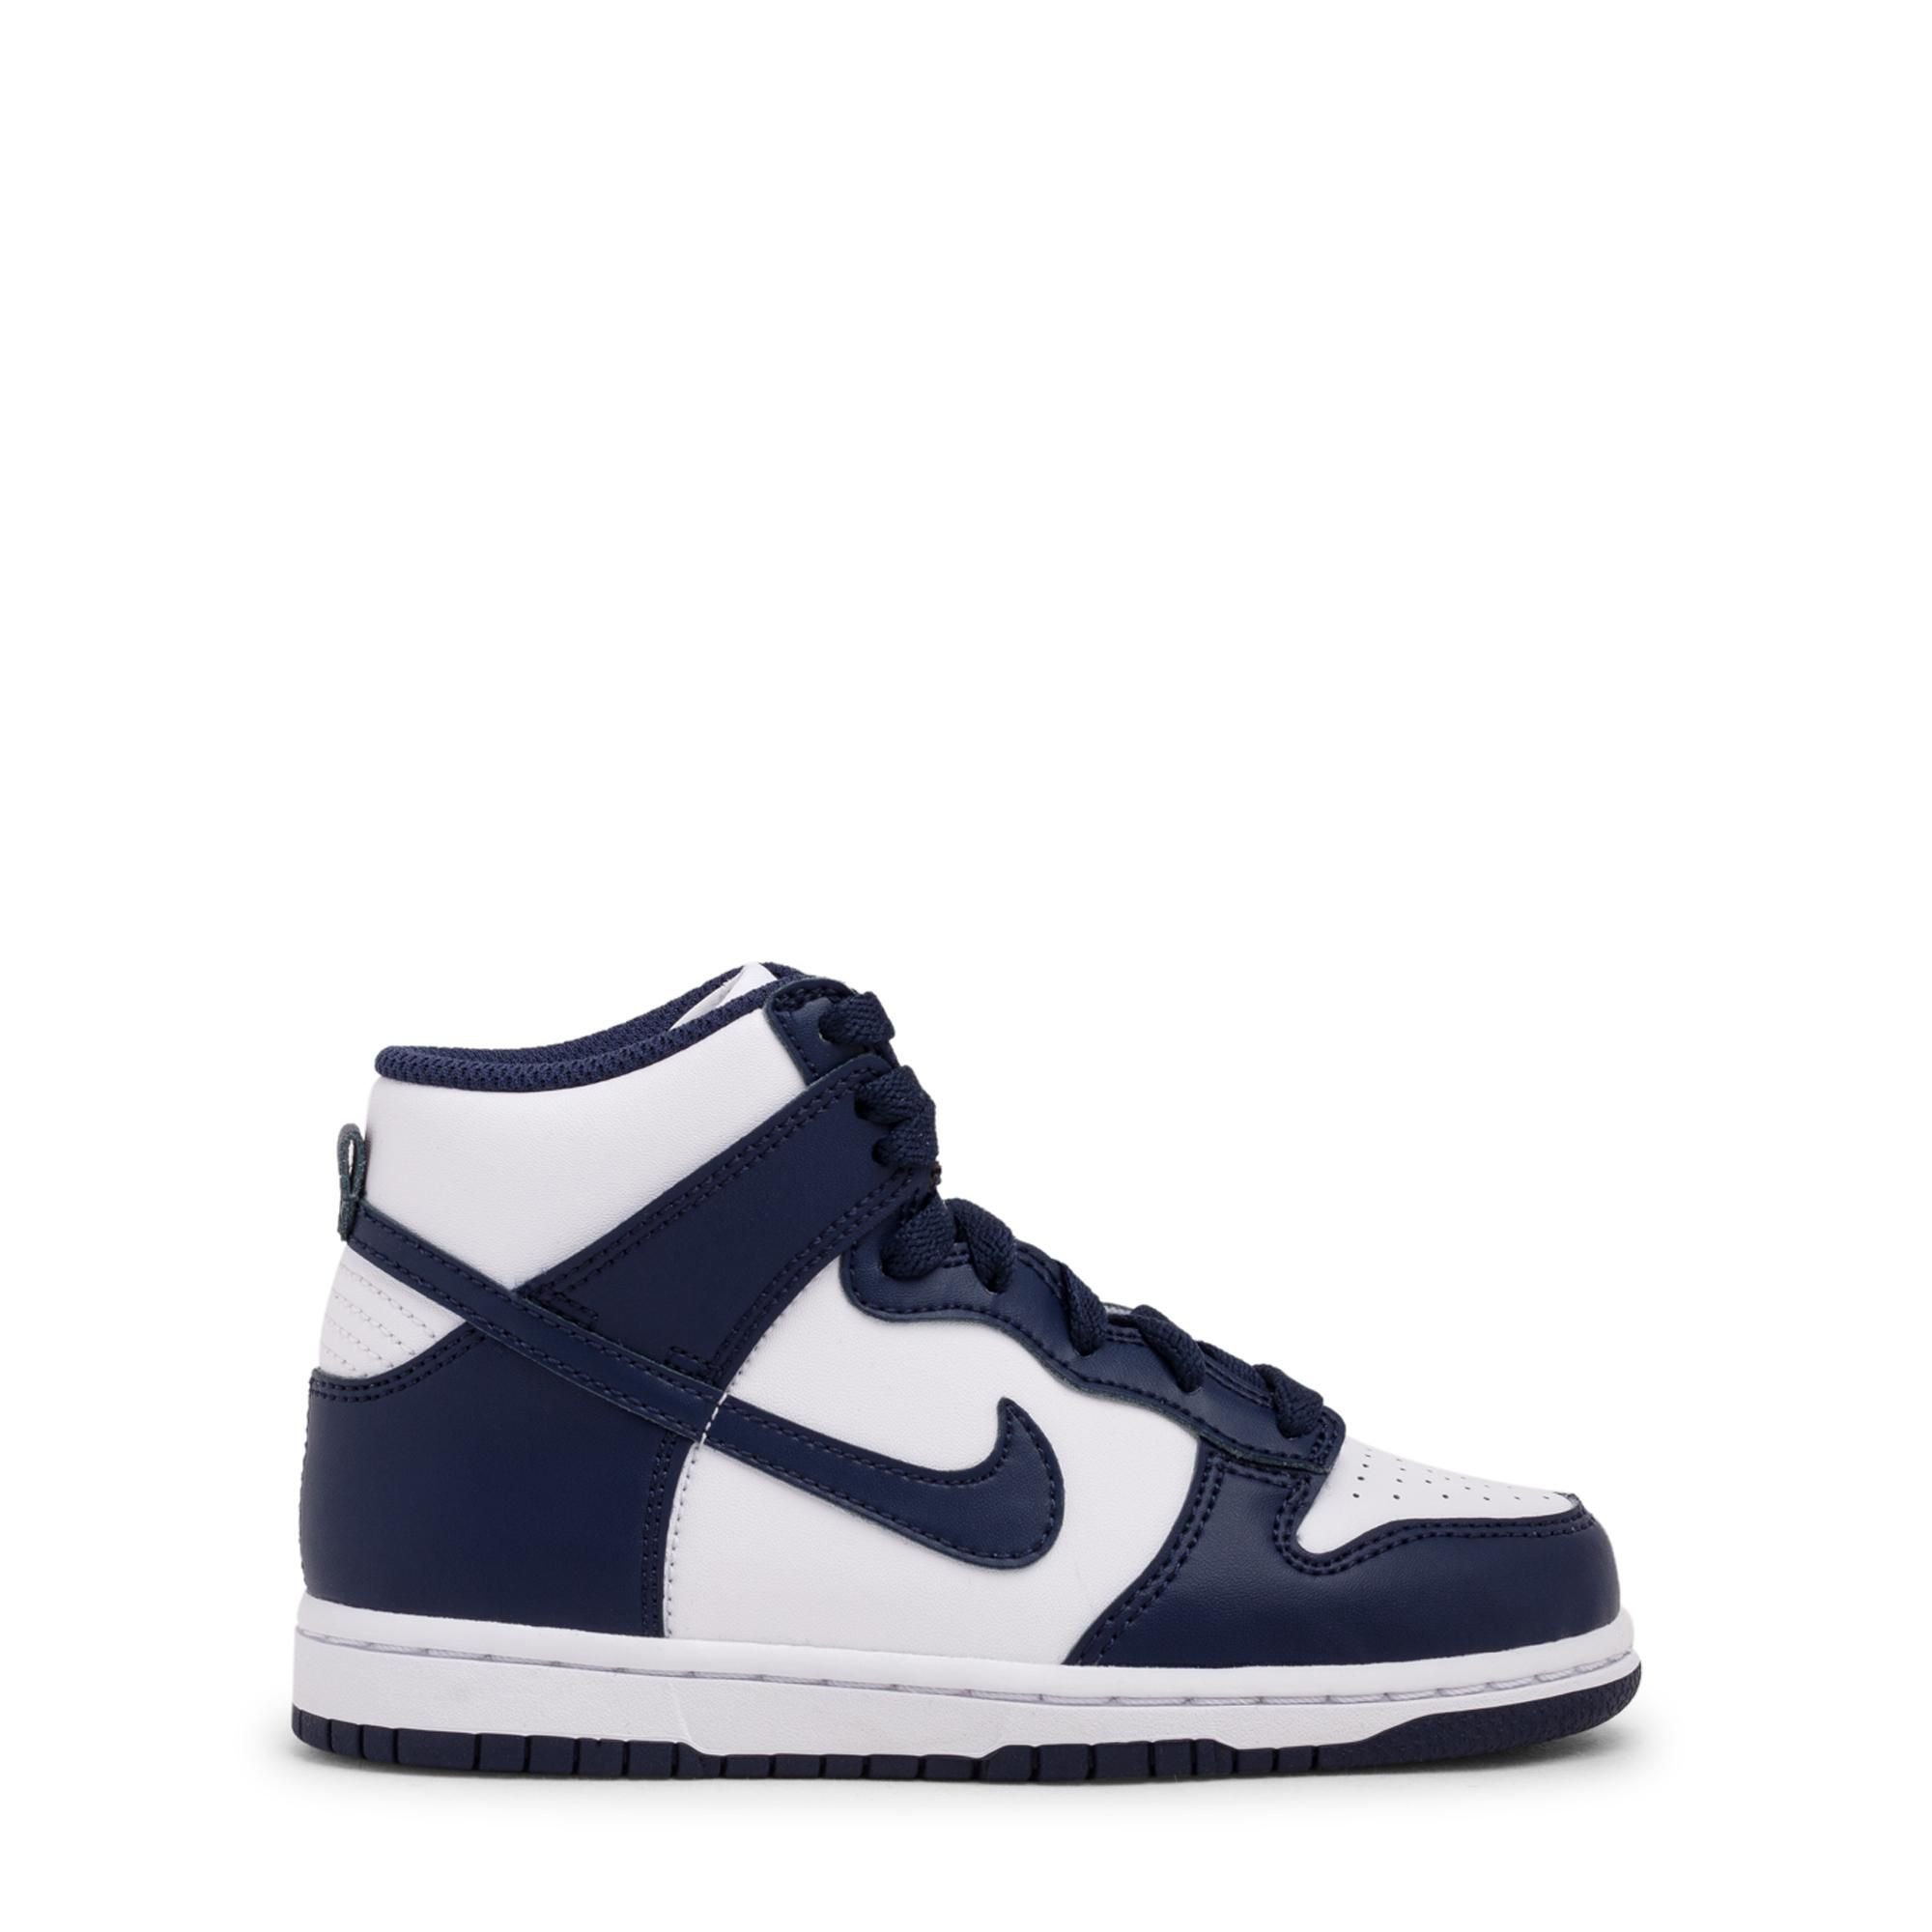 Dunk High sneakers